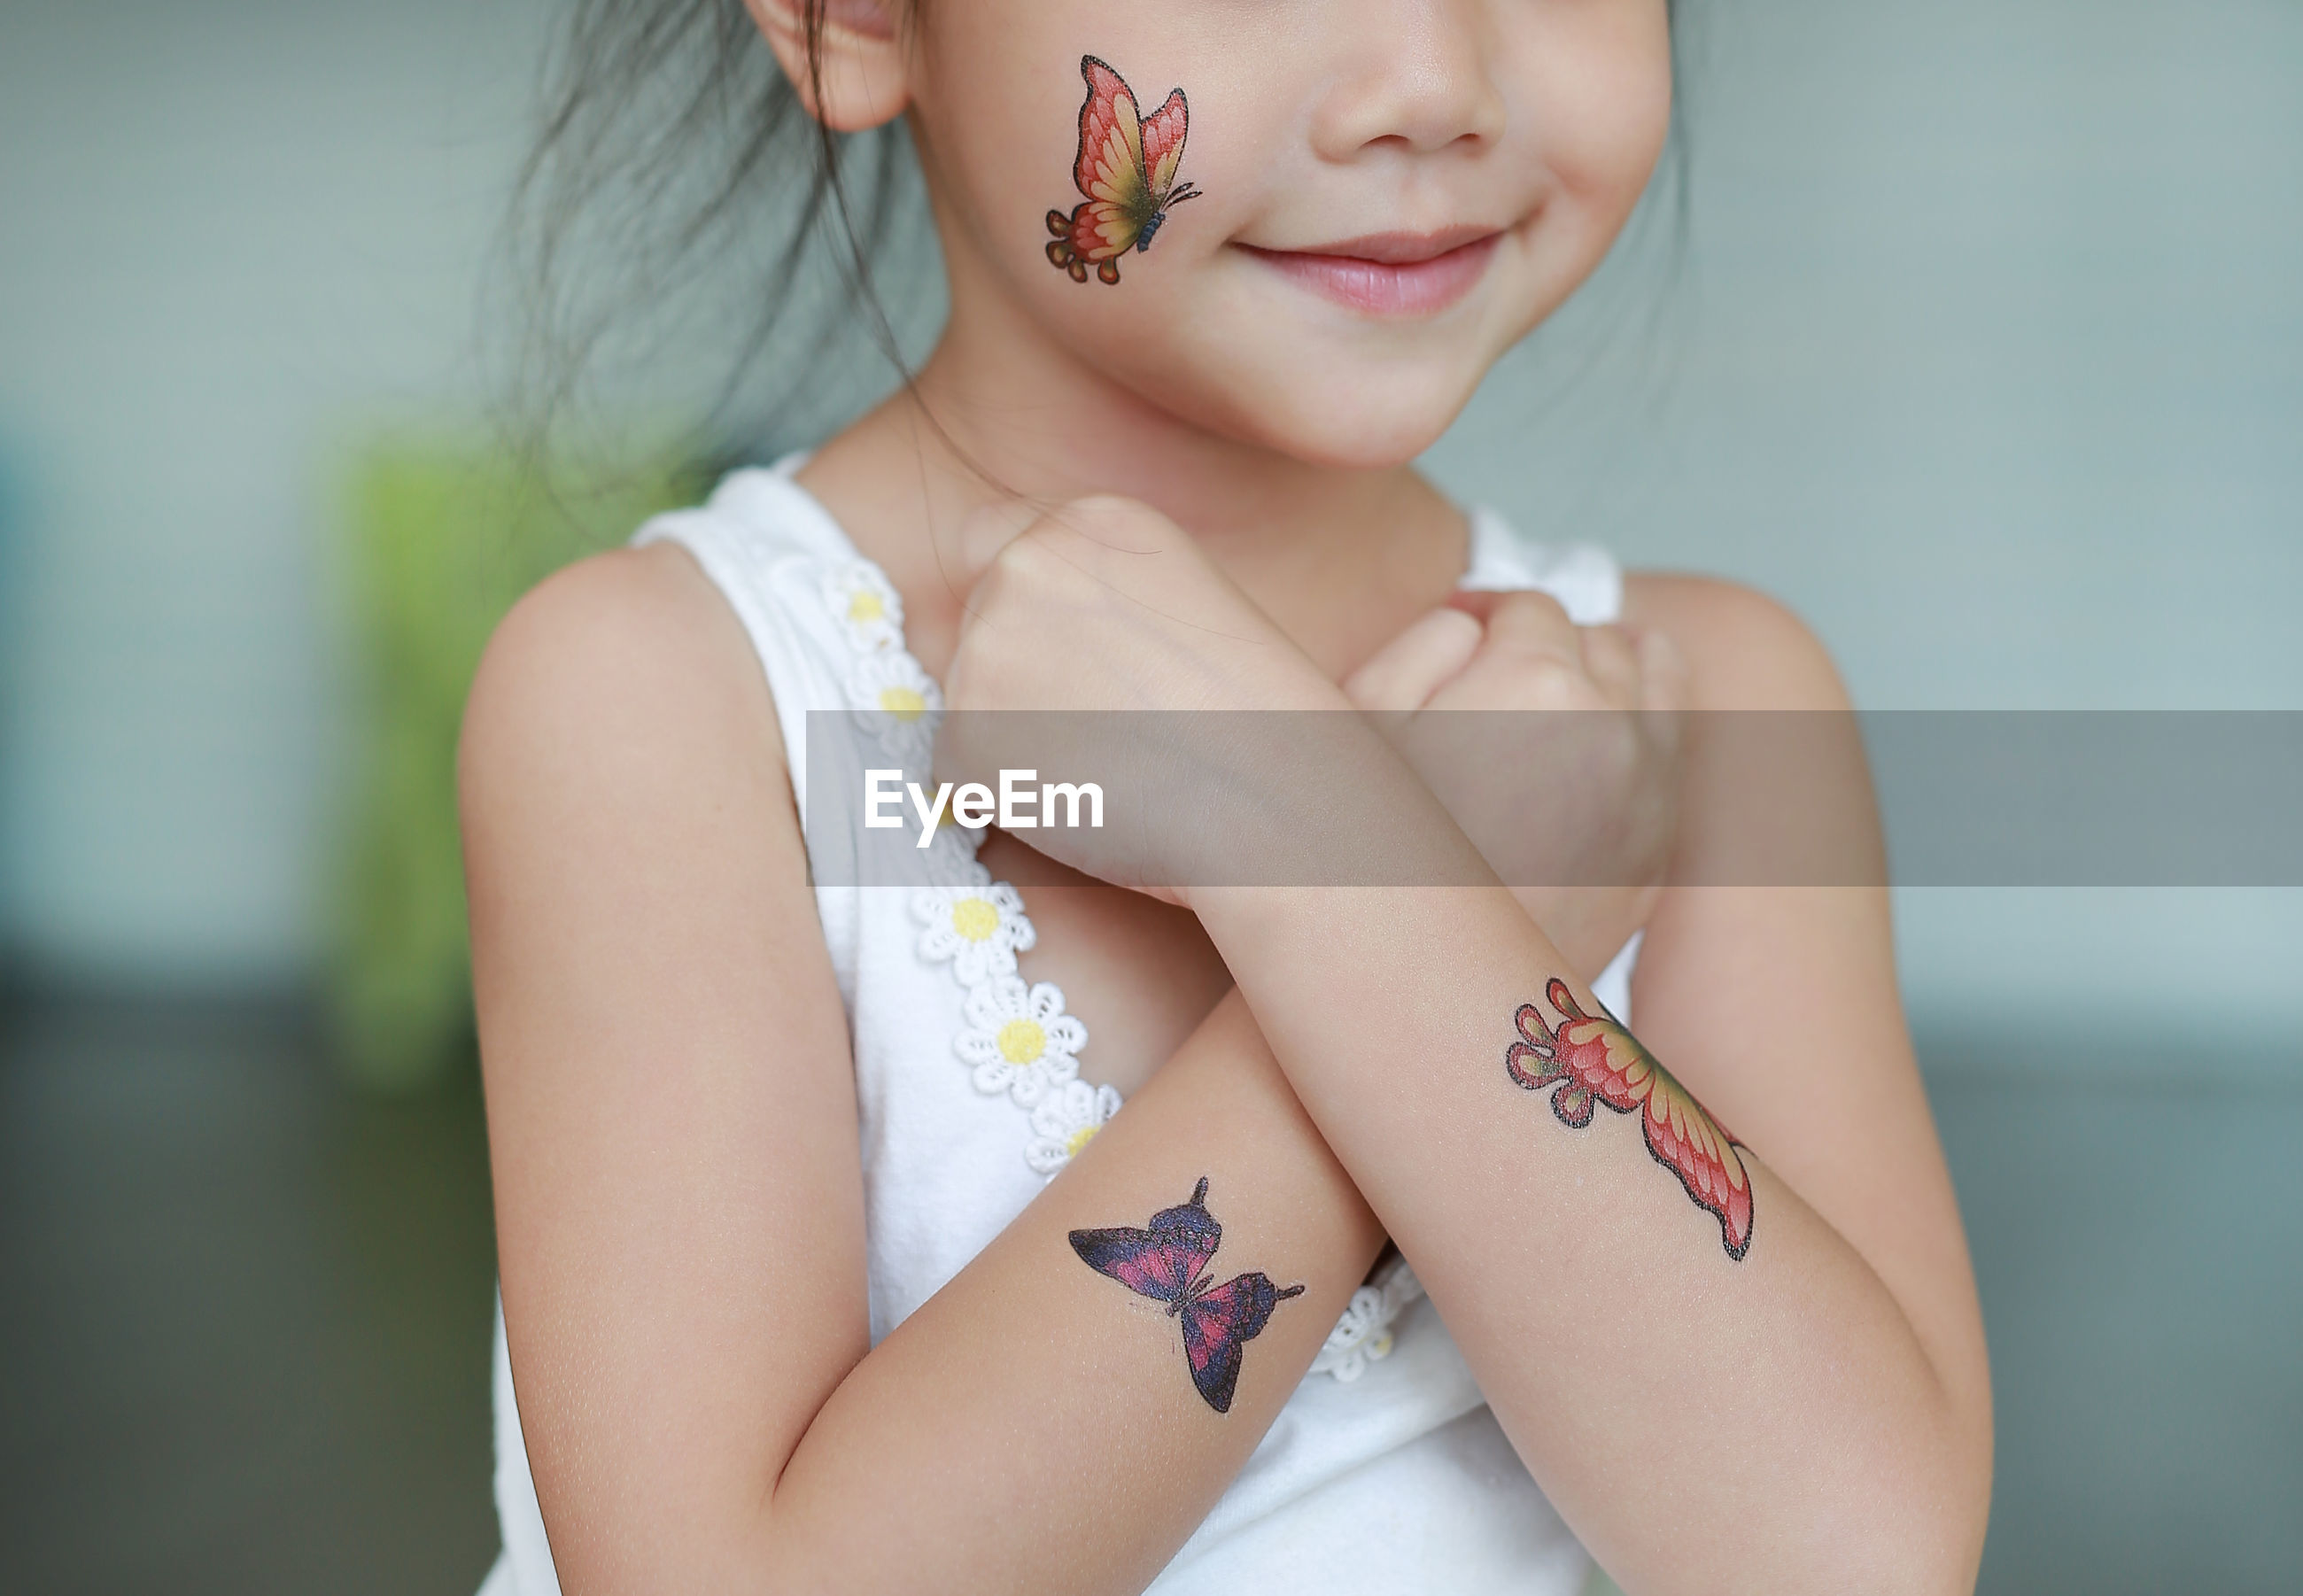 Midsection of girl with artificial butterfly tattoos on body parts at home